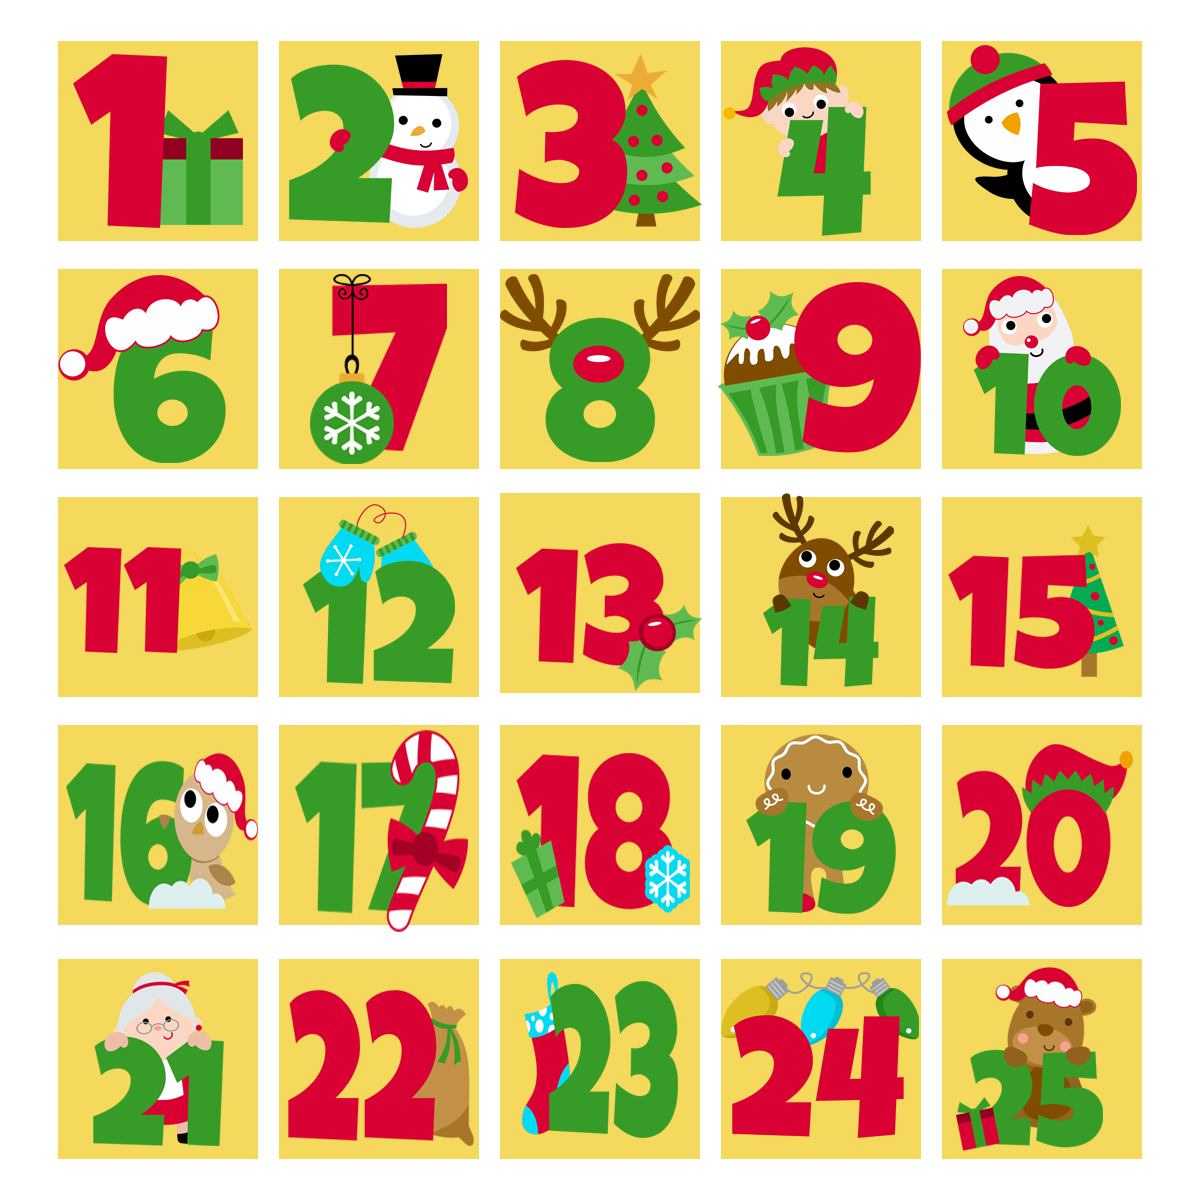 24 Days of Christmas Event 2016